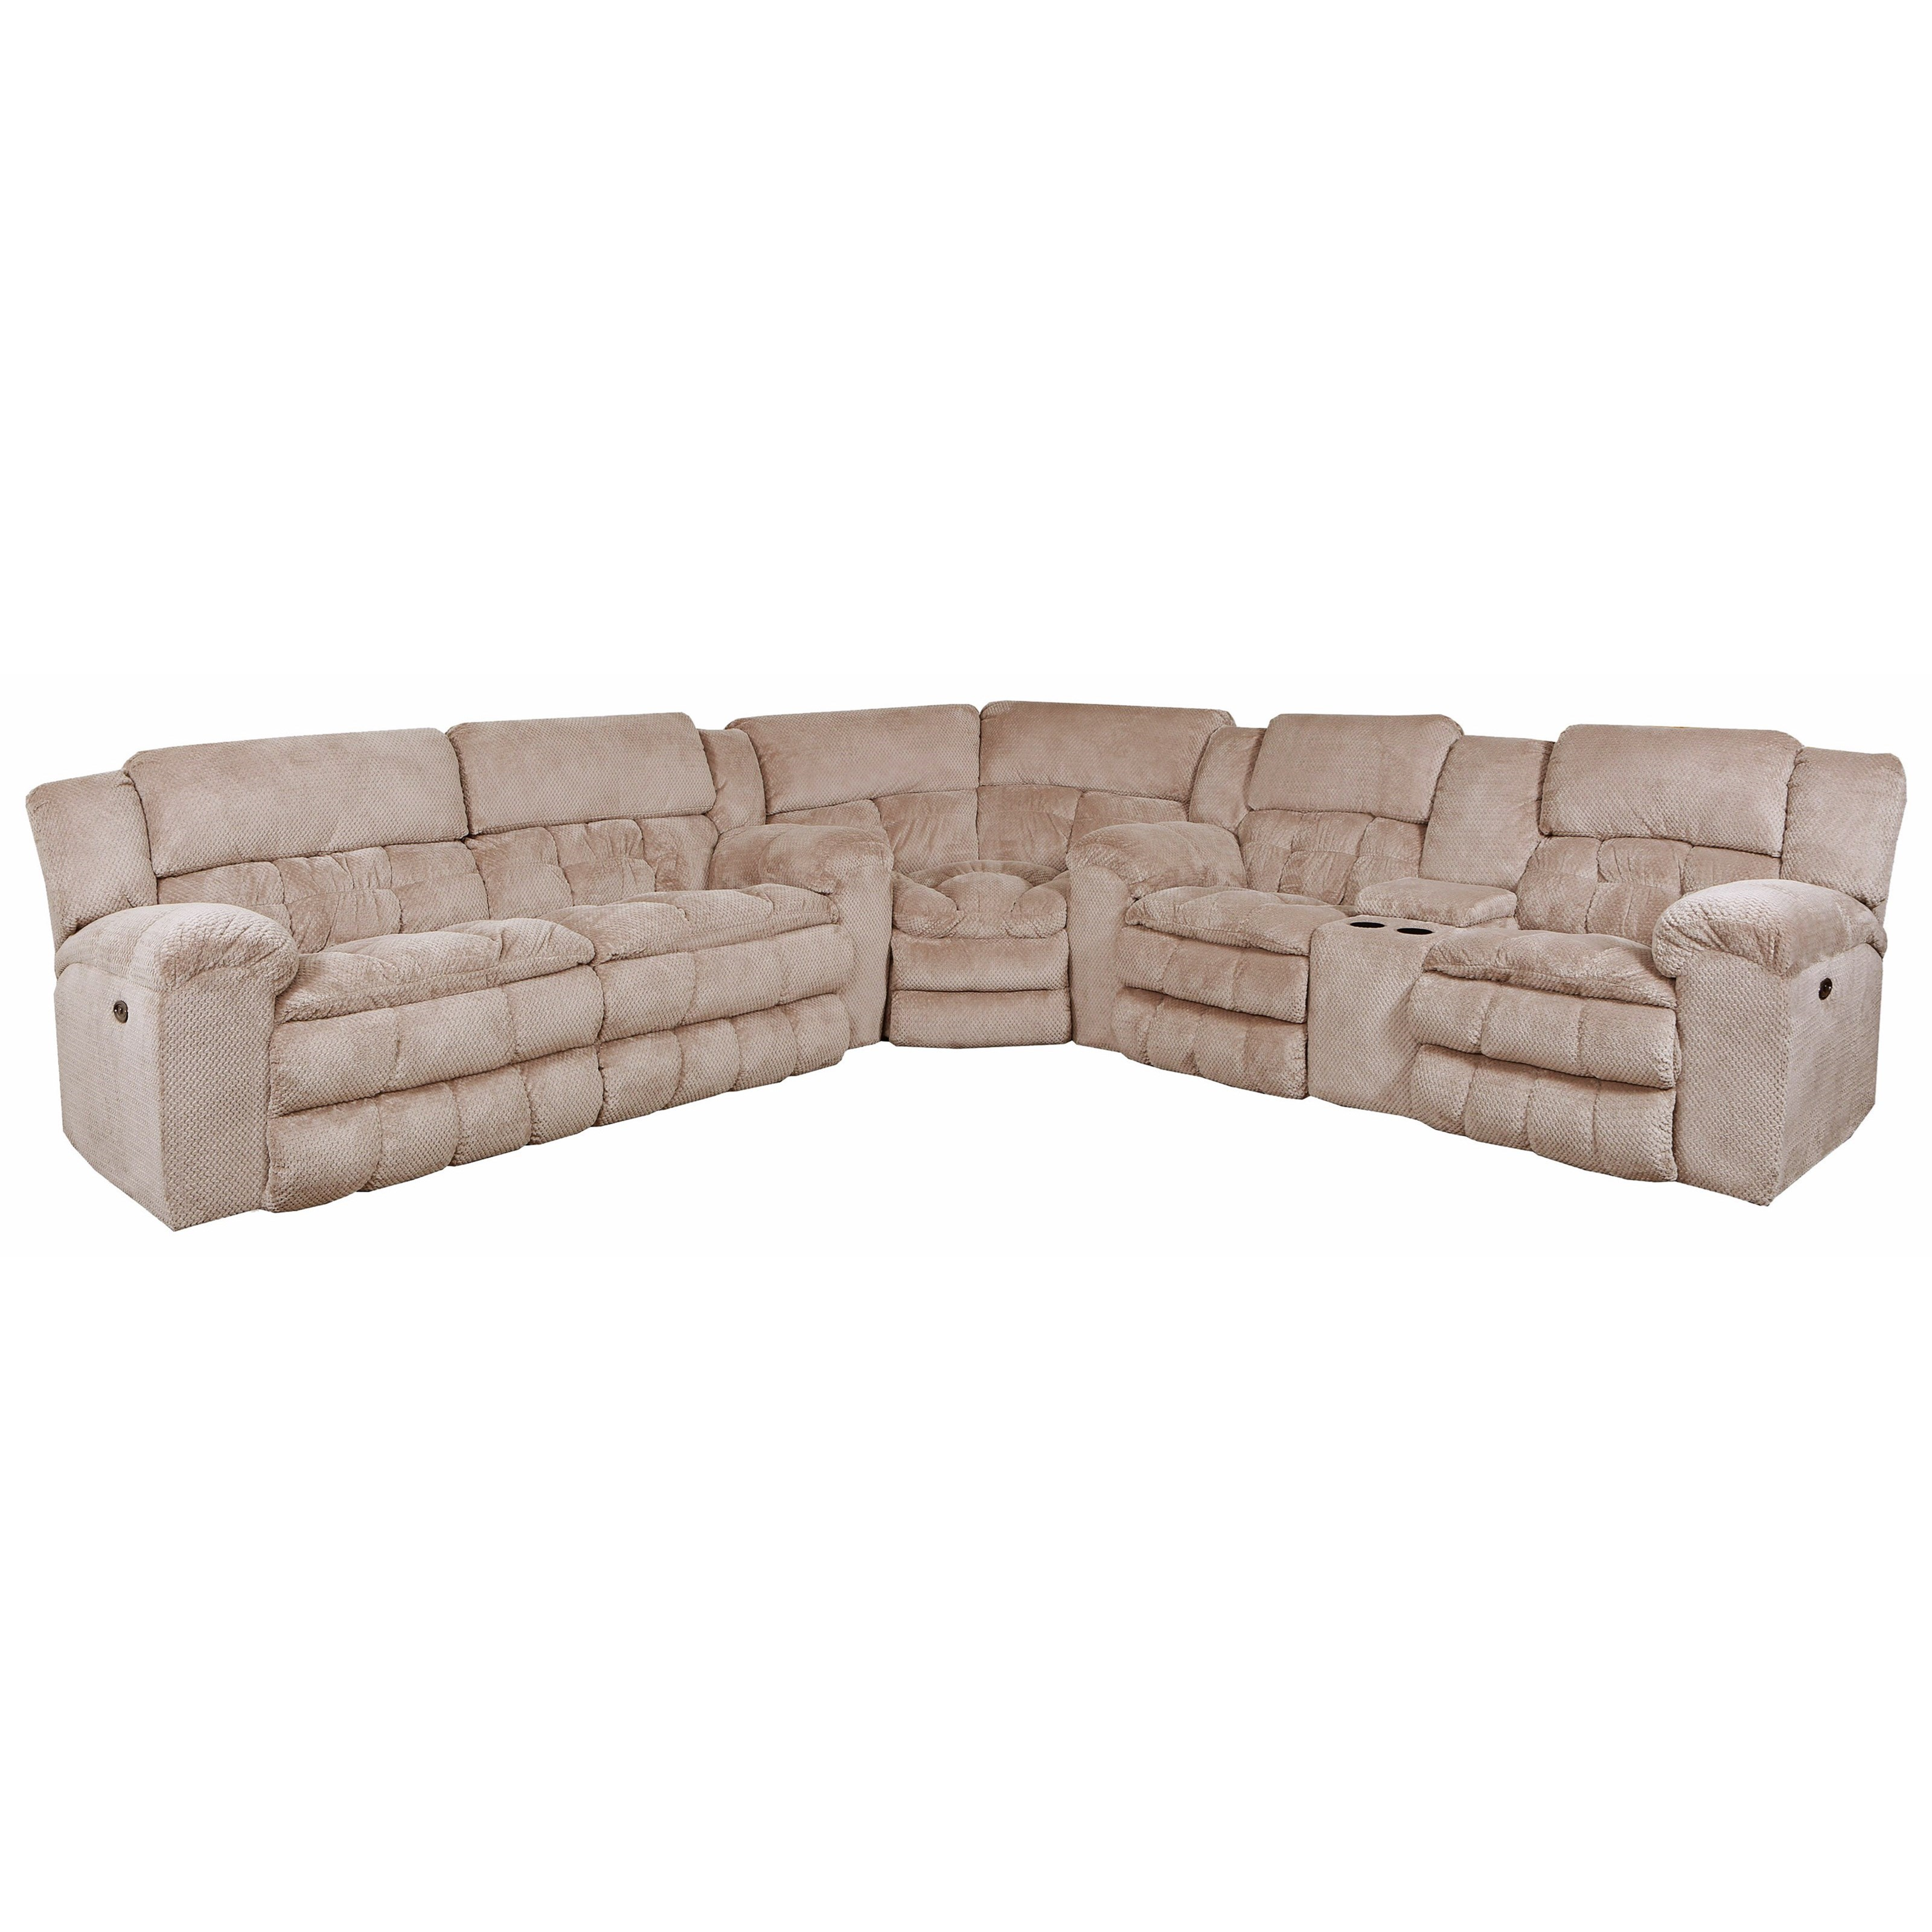 United Furniture Industries 50580BR Reclining Sectional Sofa - Item Number: 50580BRS+LS+W+Madeline Sandstone